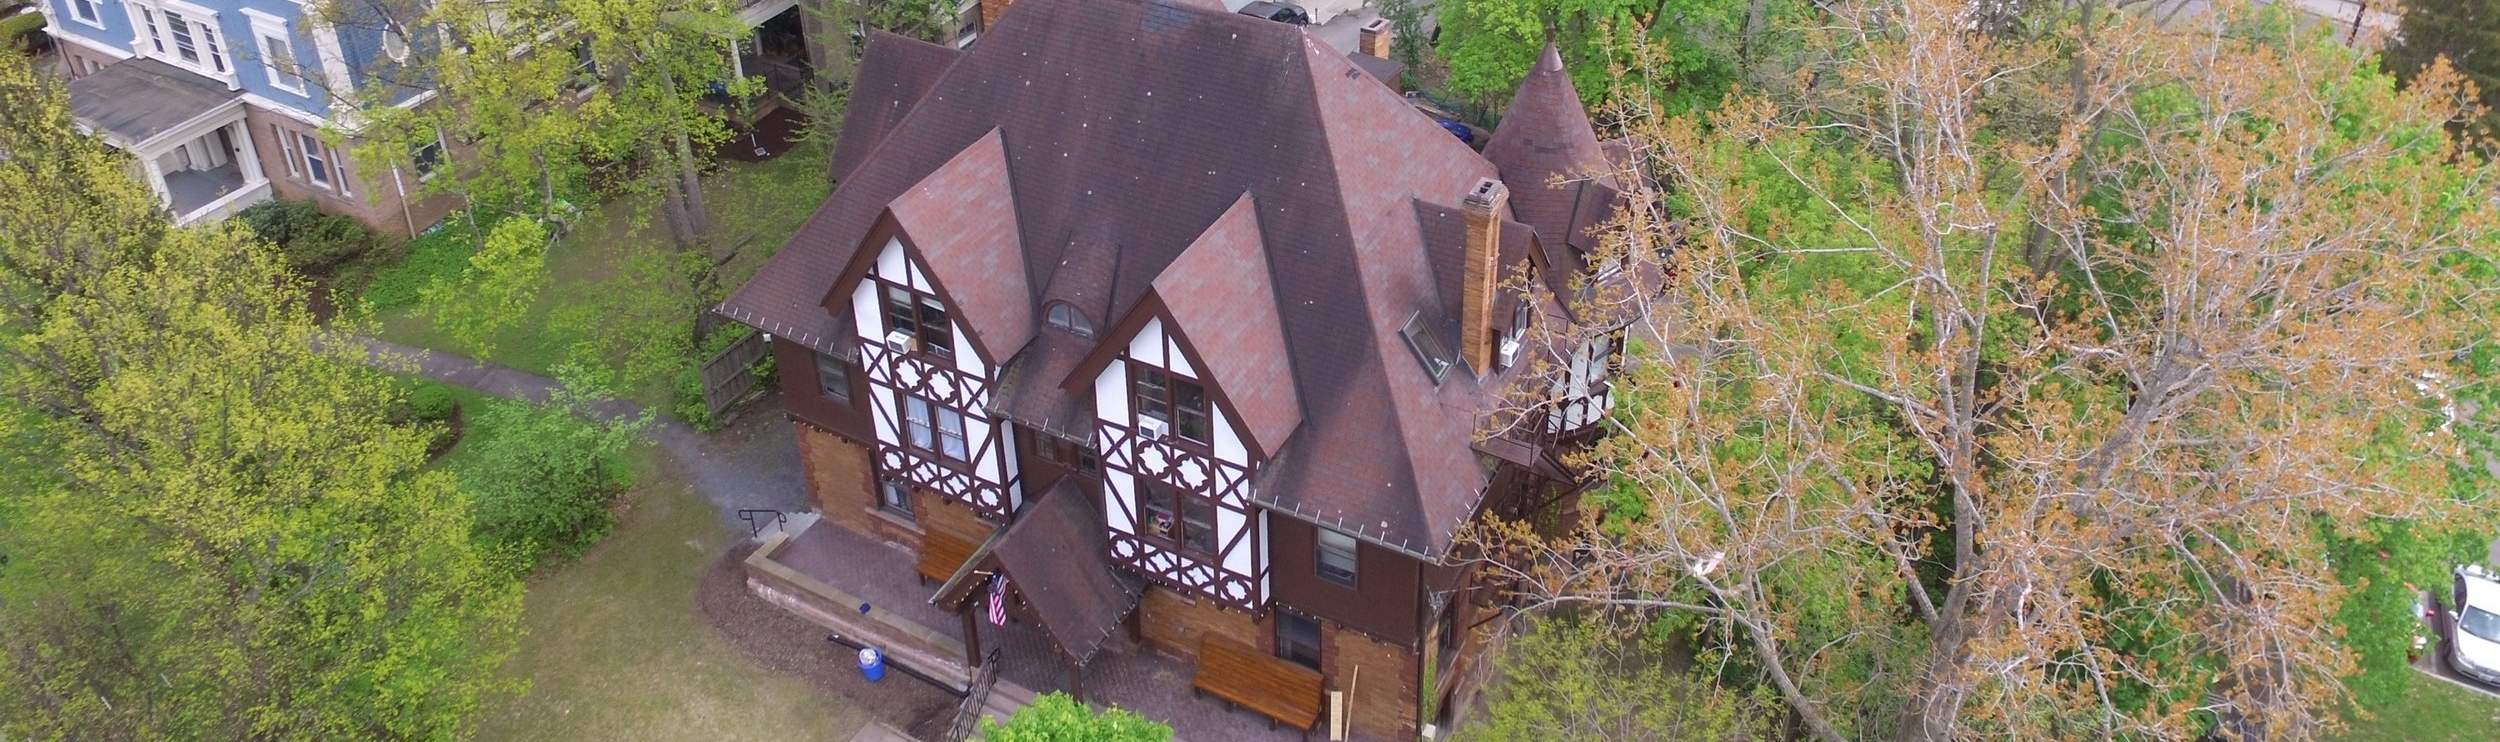 17 South - Aerial View